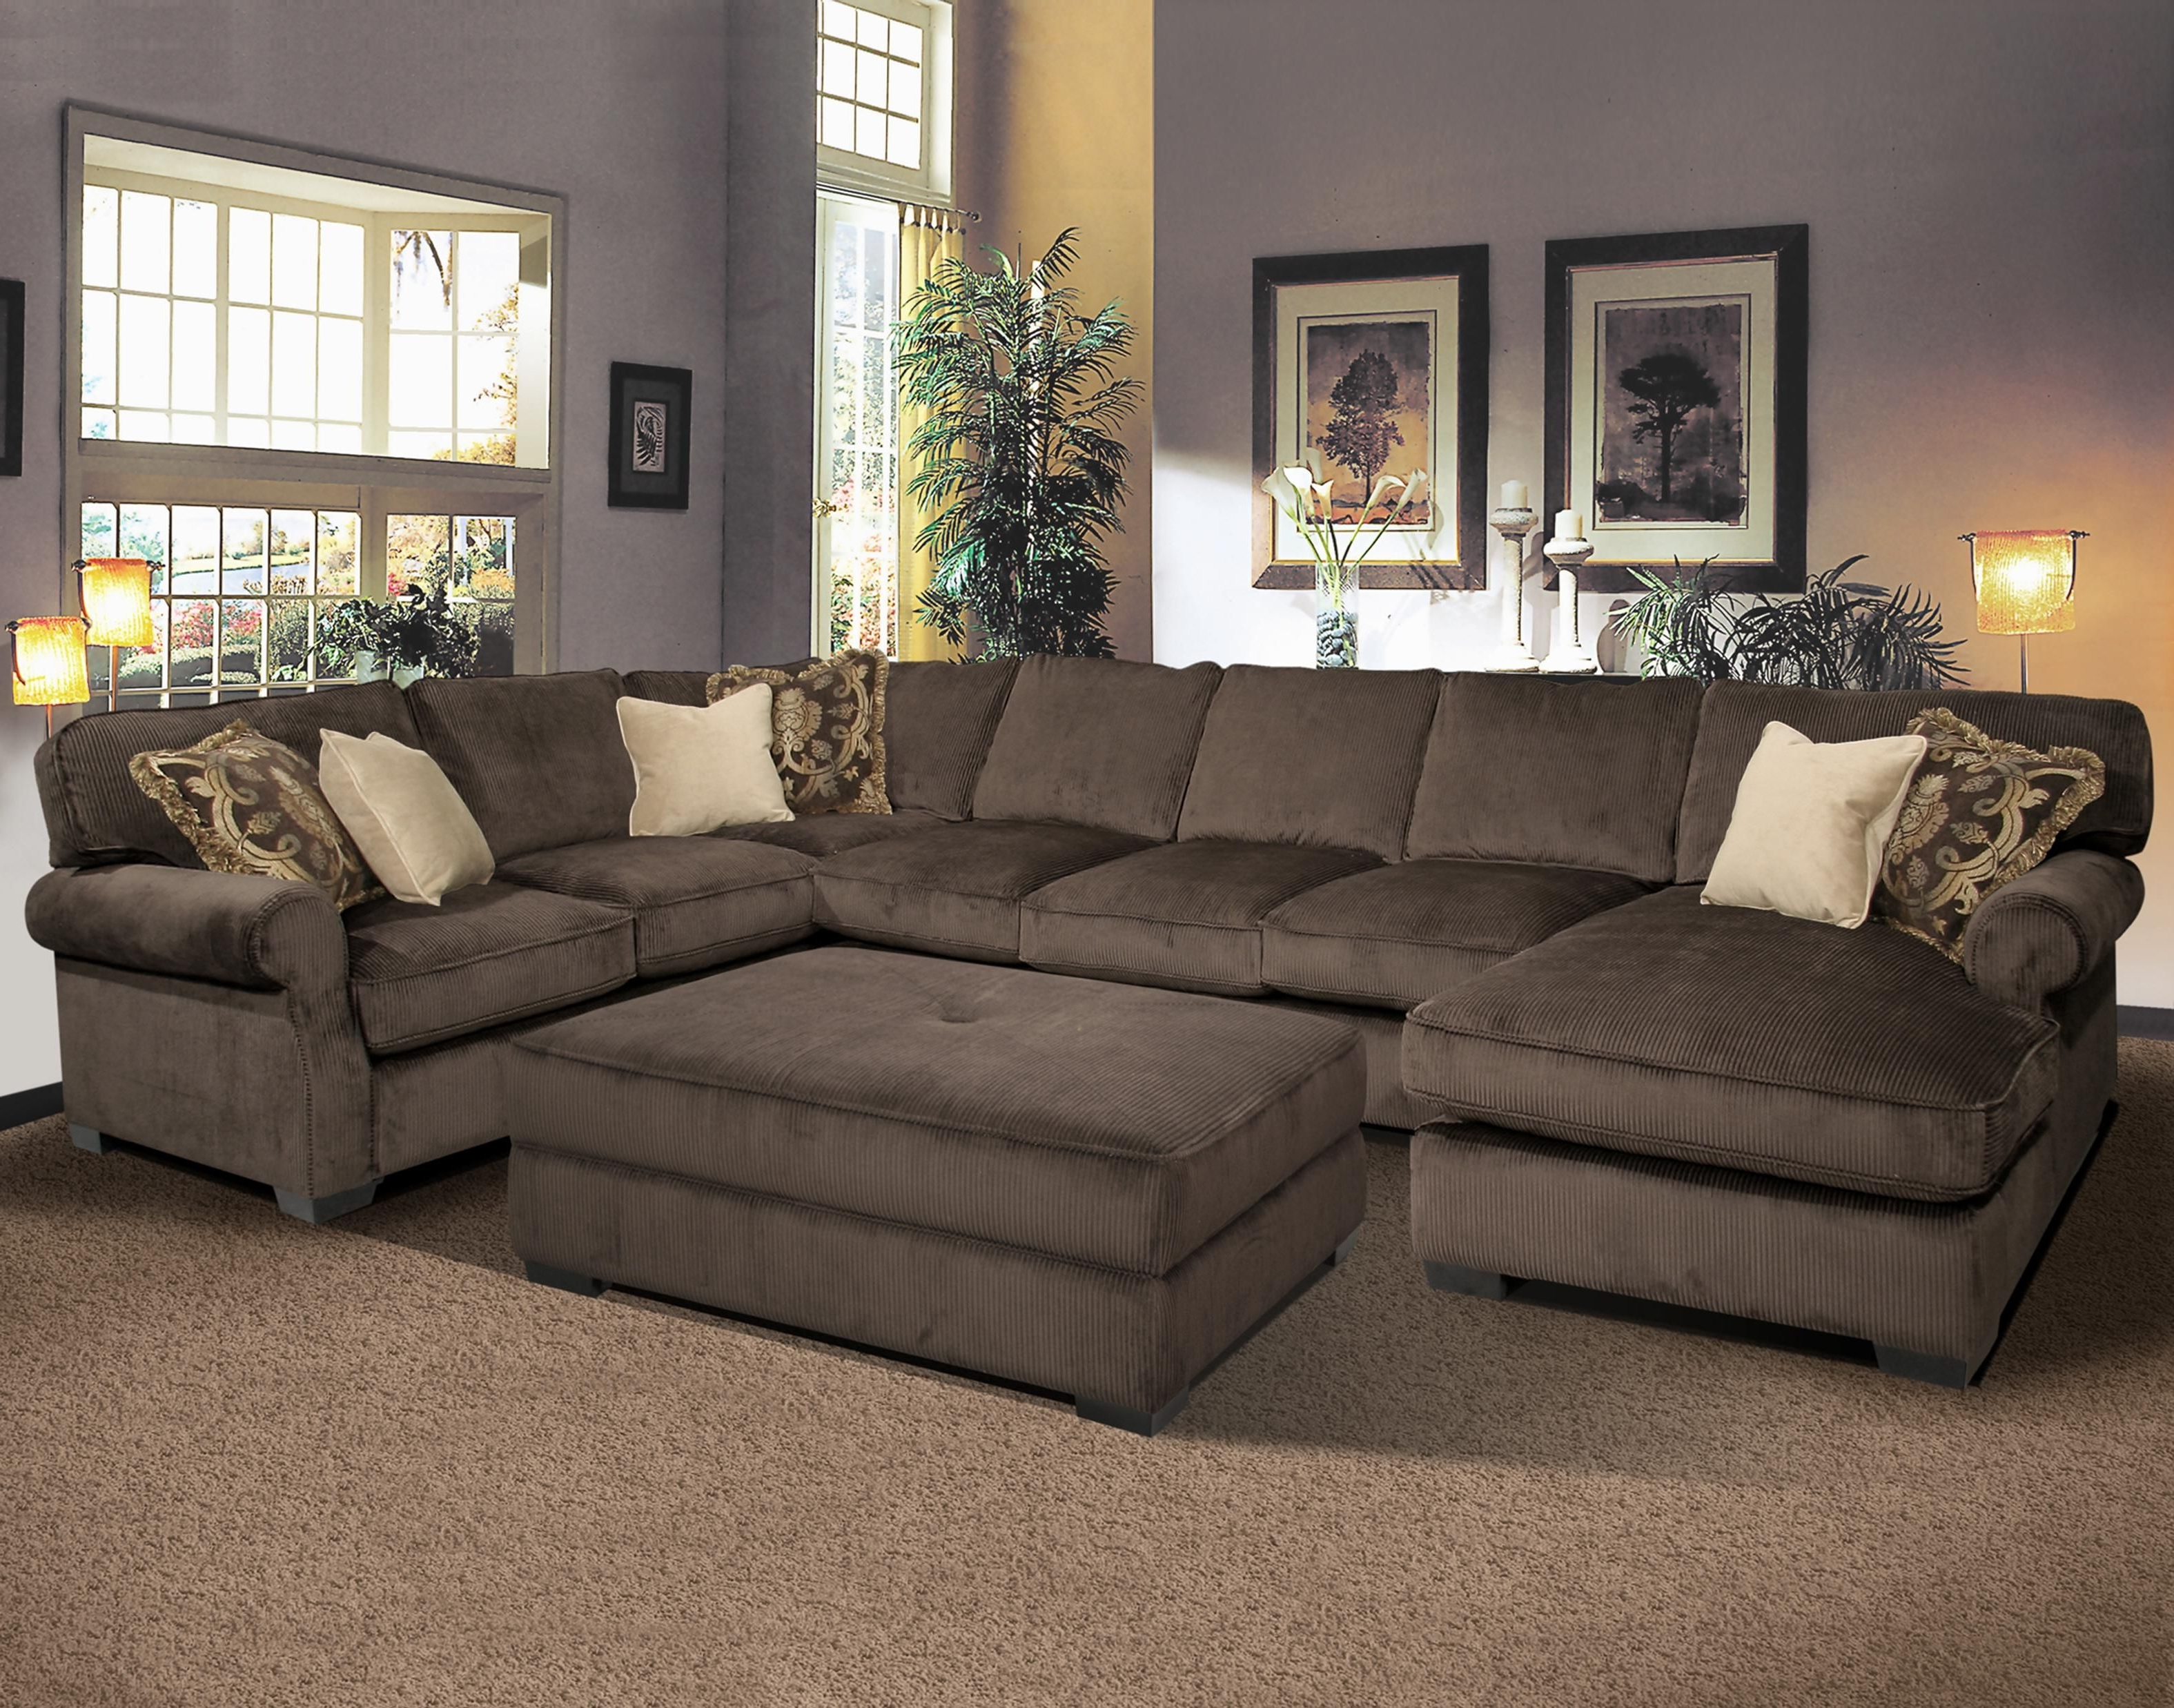 Widely Used Sofas With Ottoman Within Large Sectional Sofa With Ottoman (View 12 of 20)